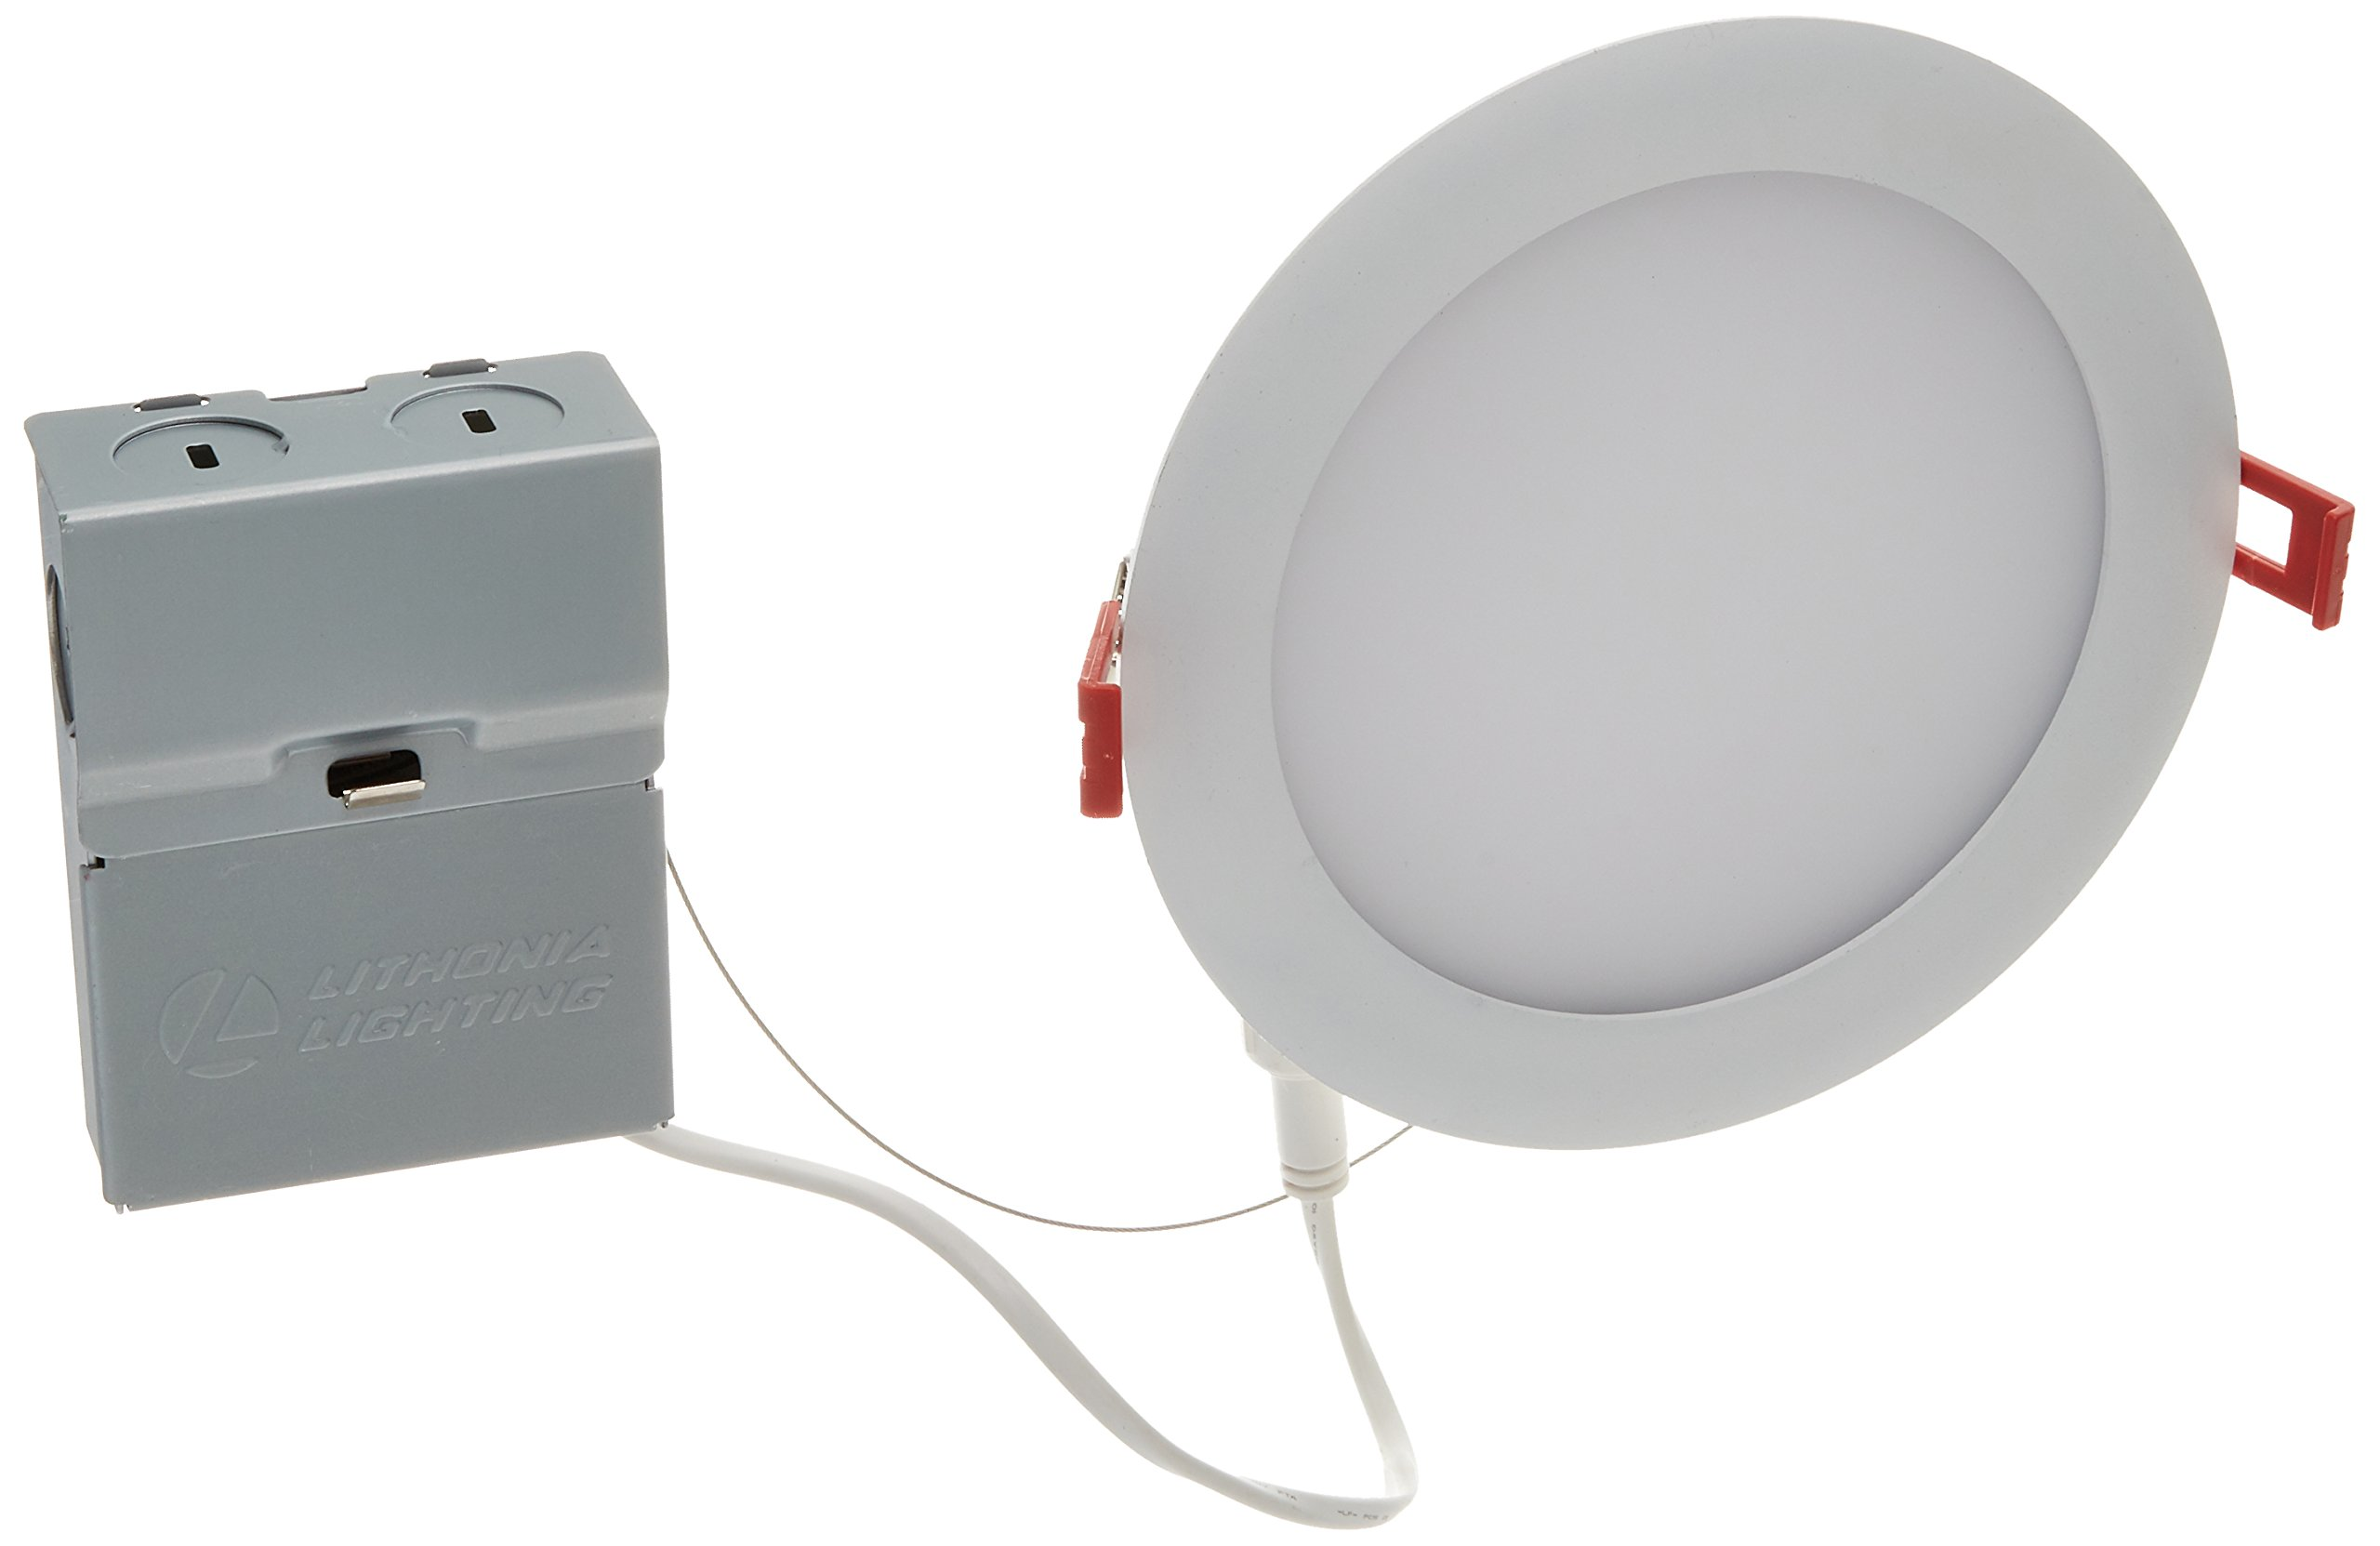 dimmable white light lithonia led mw thin ceiling recessed lights product lighting ultra